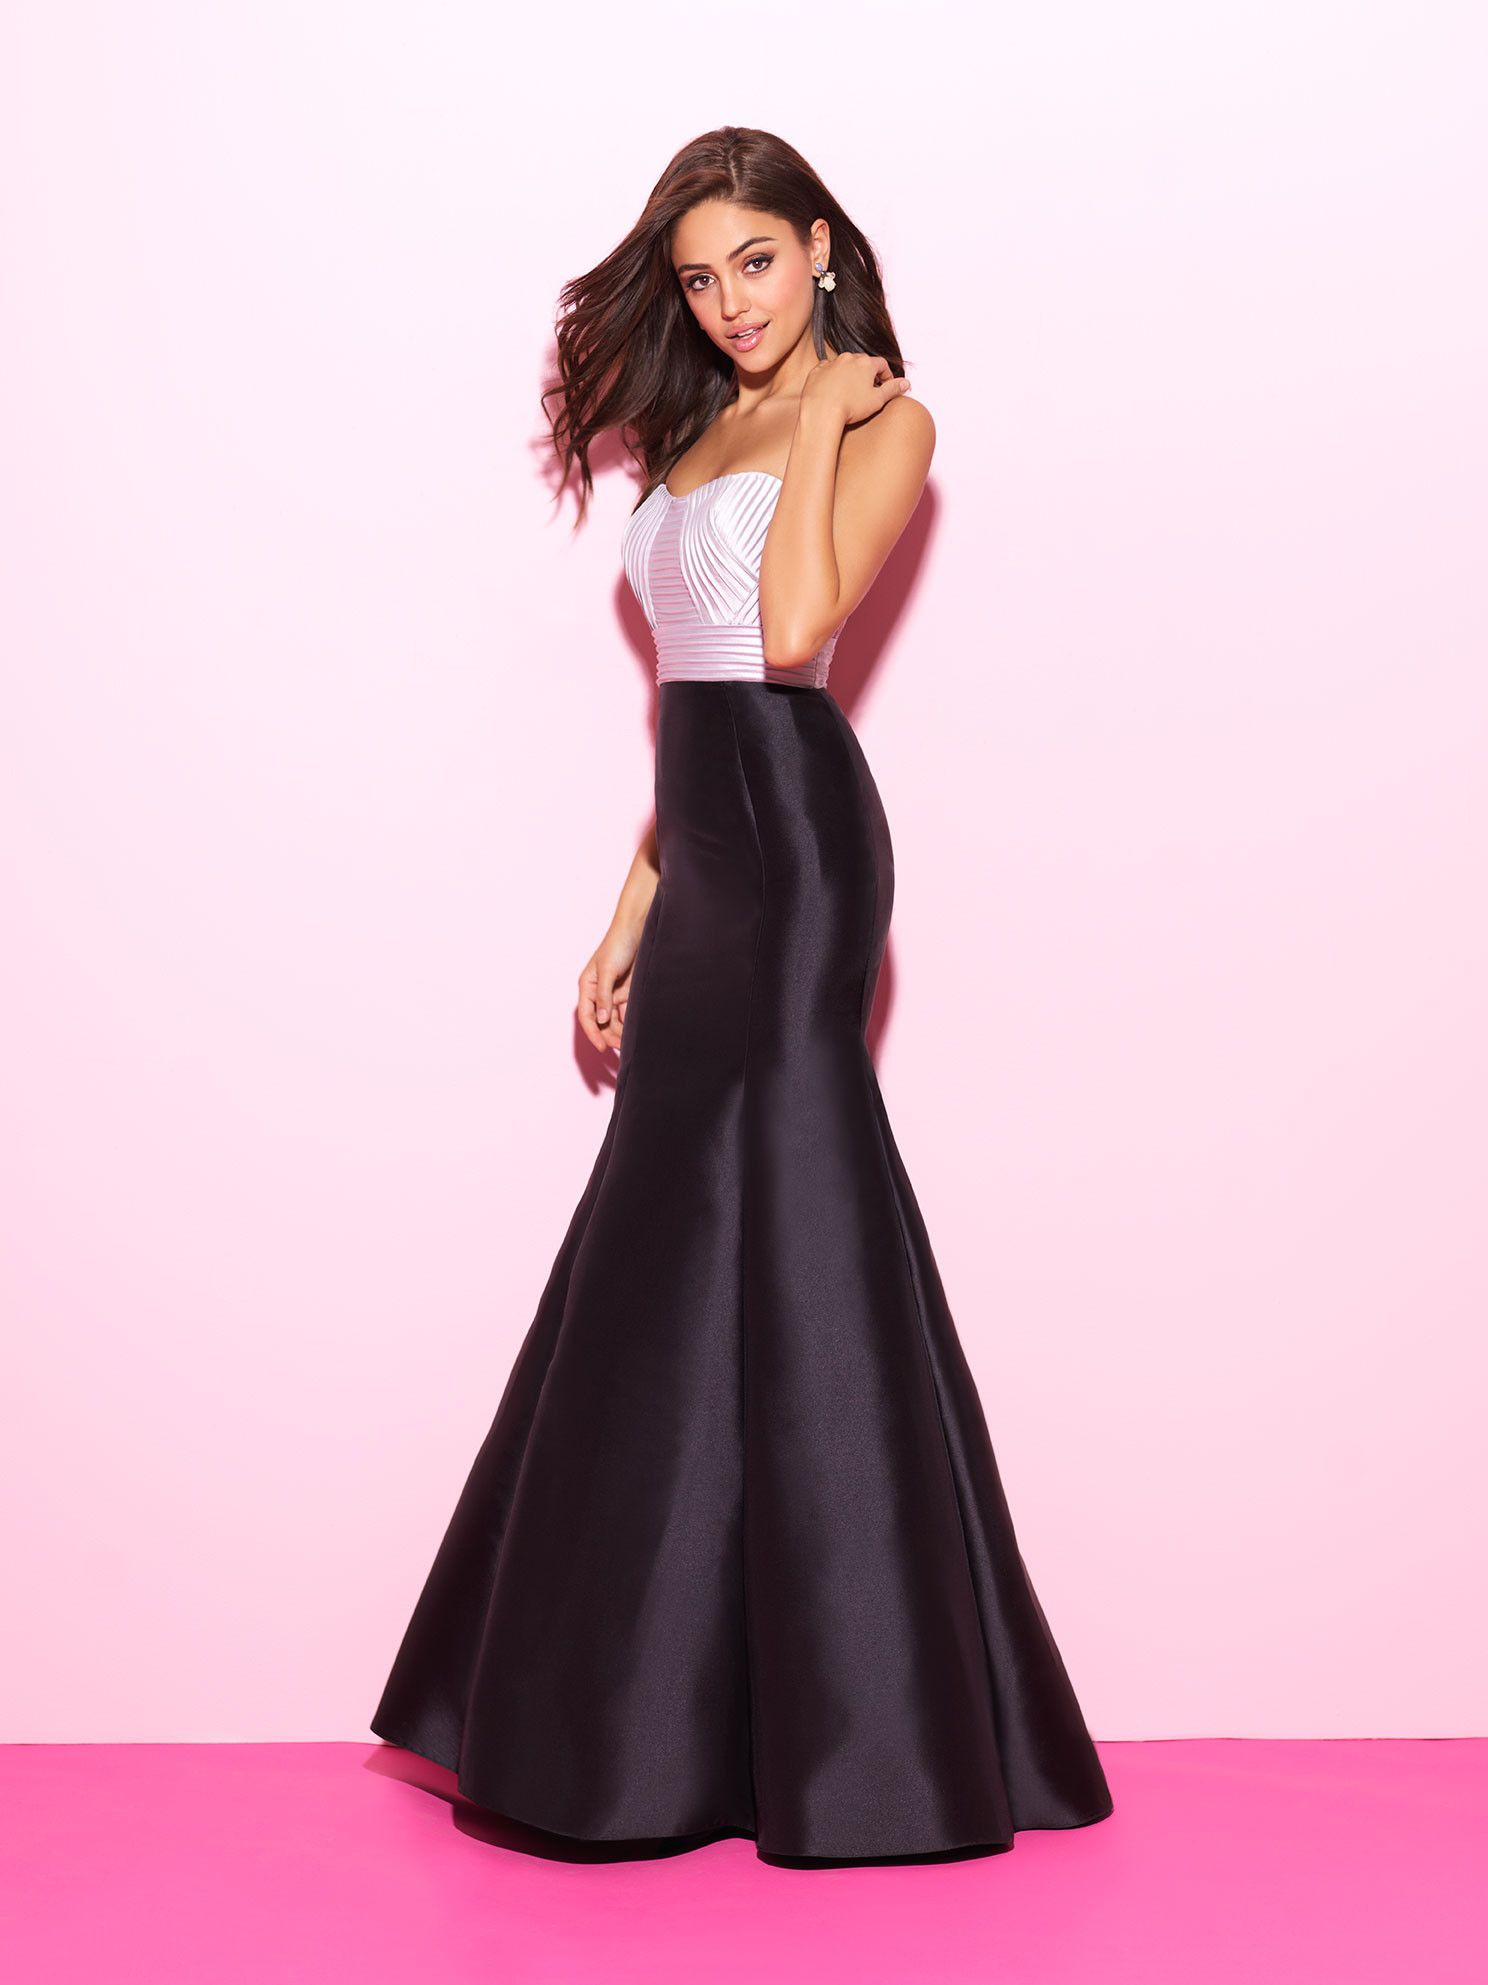 Madison James Prom 17-229   Products   Pinterest   Products